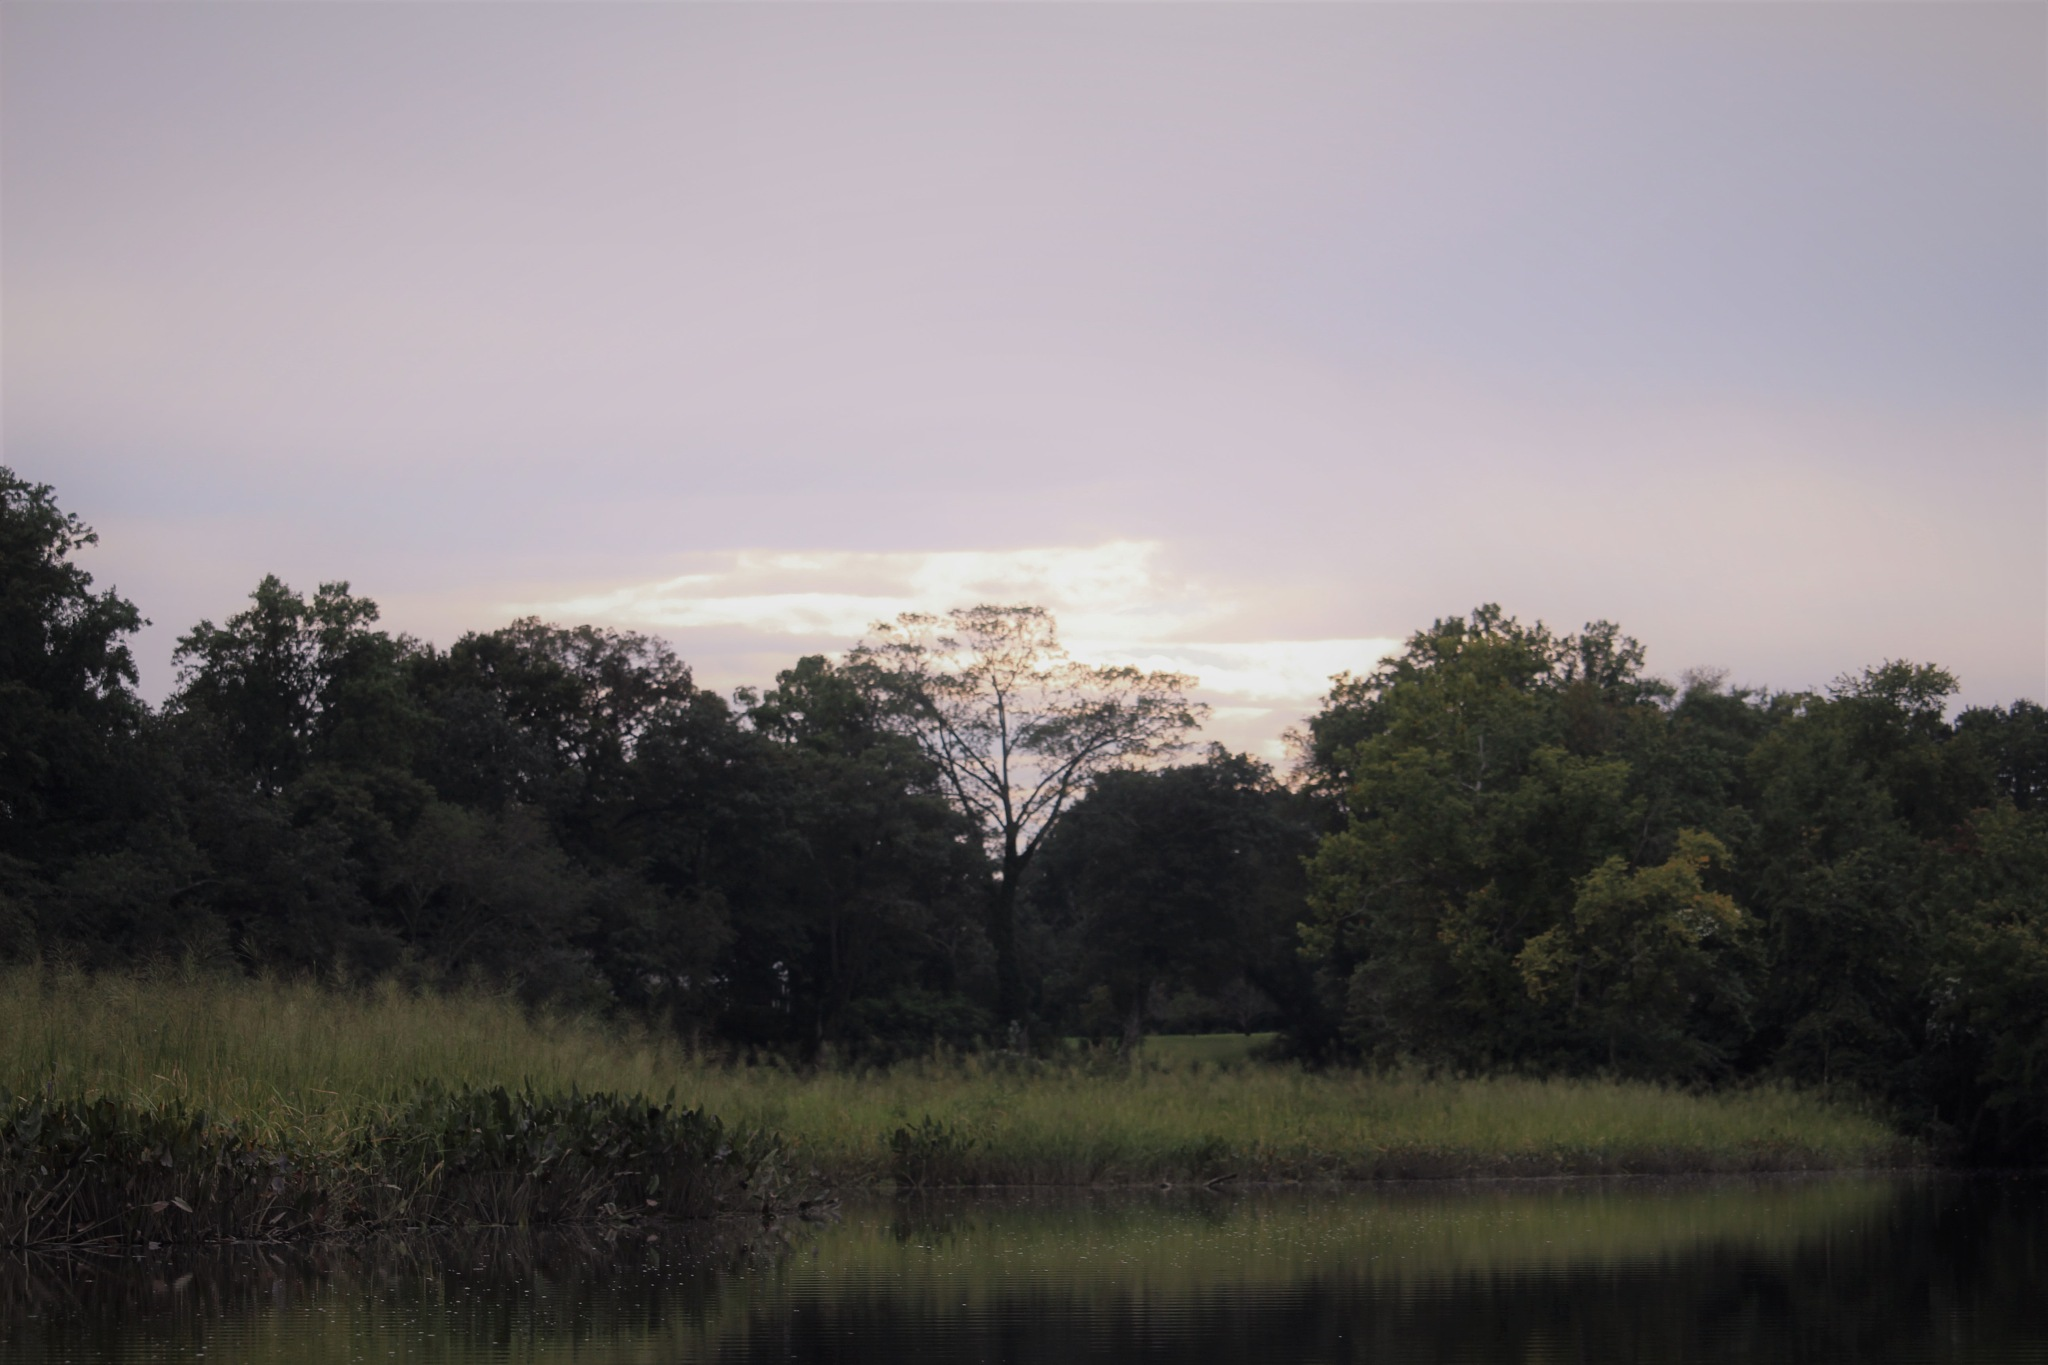 Dusk on the river by VanWyck